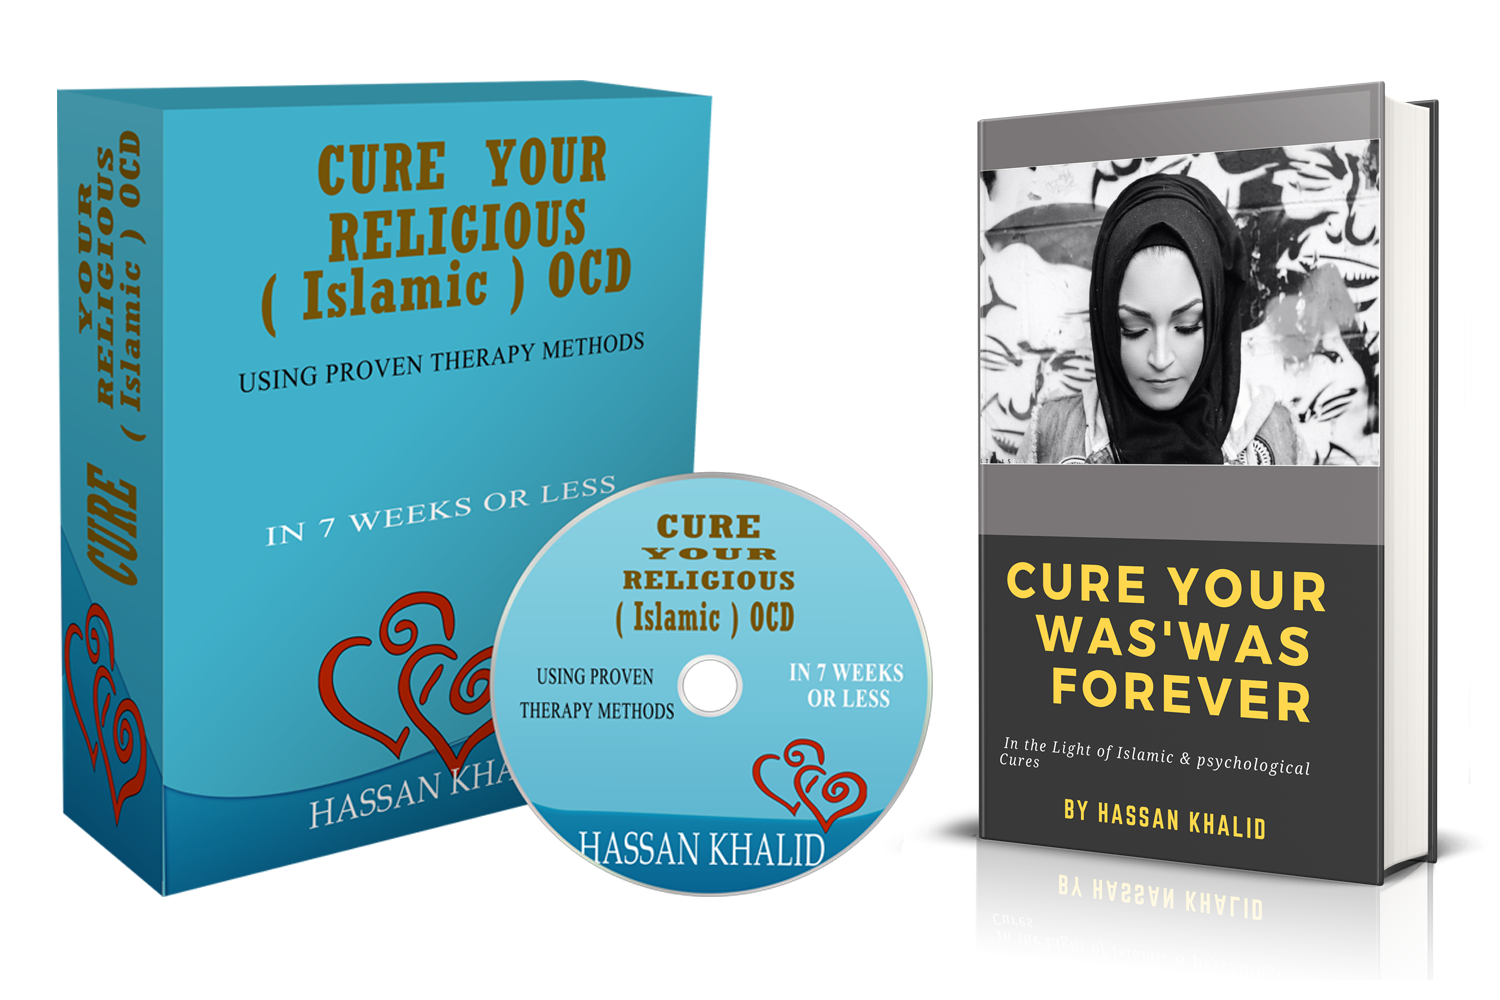 Islamic OCD Cure